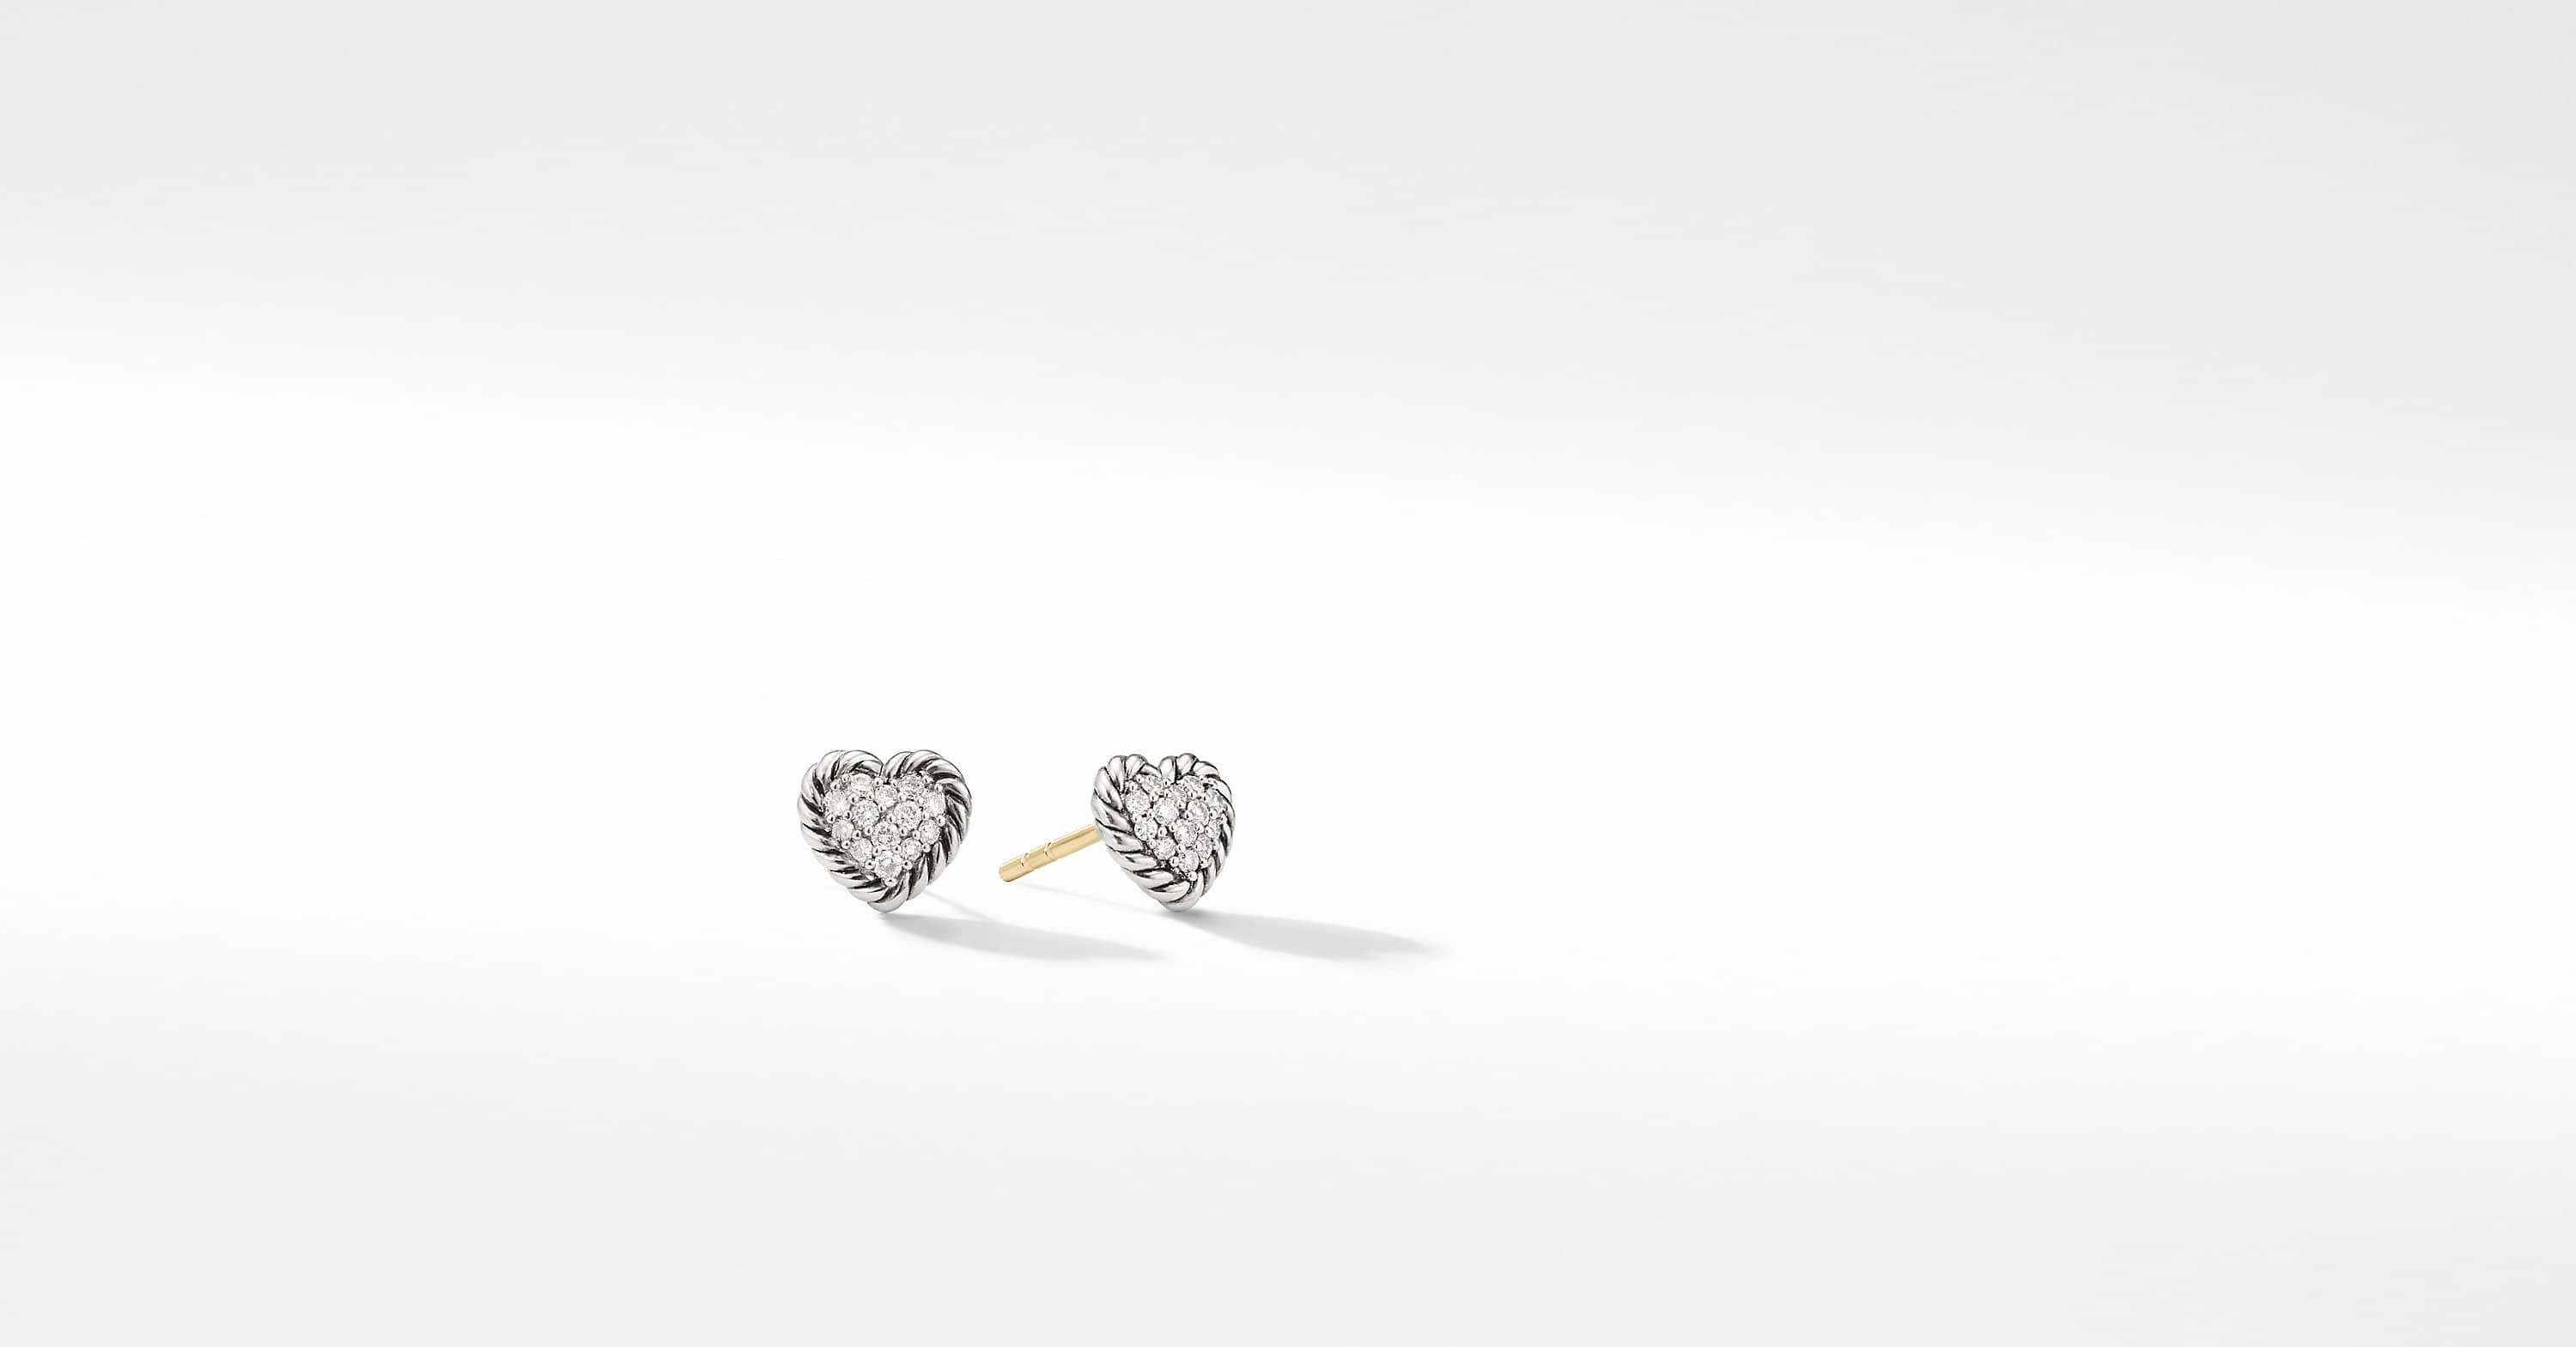 Petite Pave Heart Earrings with Diamonds